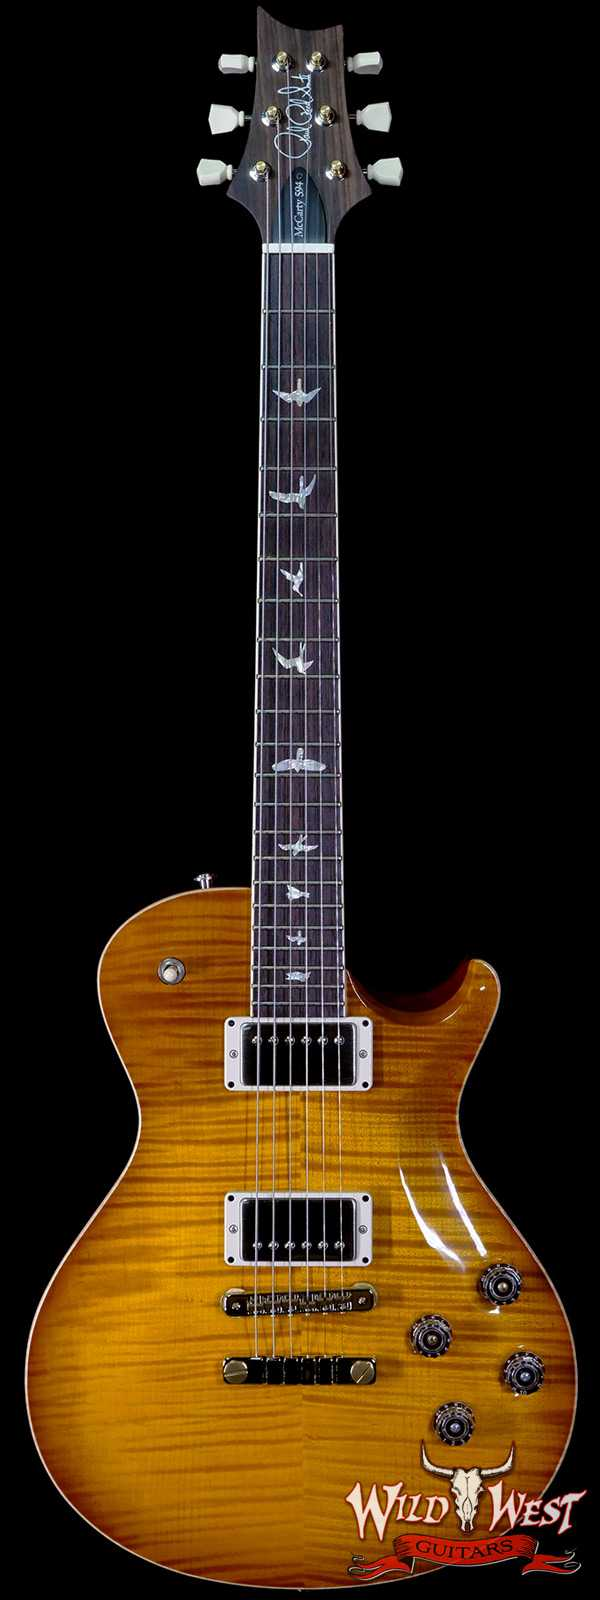 Paul Reed Smith PRS Core McCarty 594 Singlecut Flame Maple Top East Indian Rosewood Board McCarty Sunburst